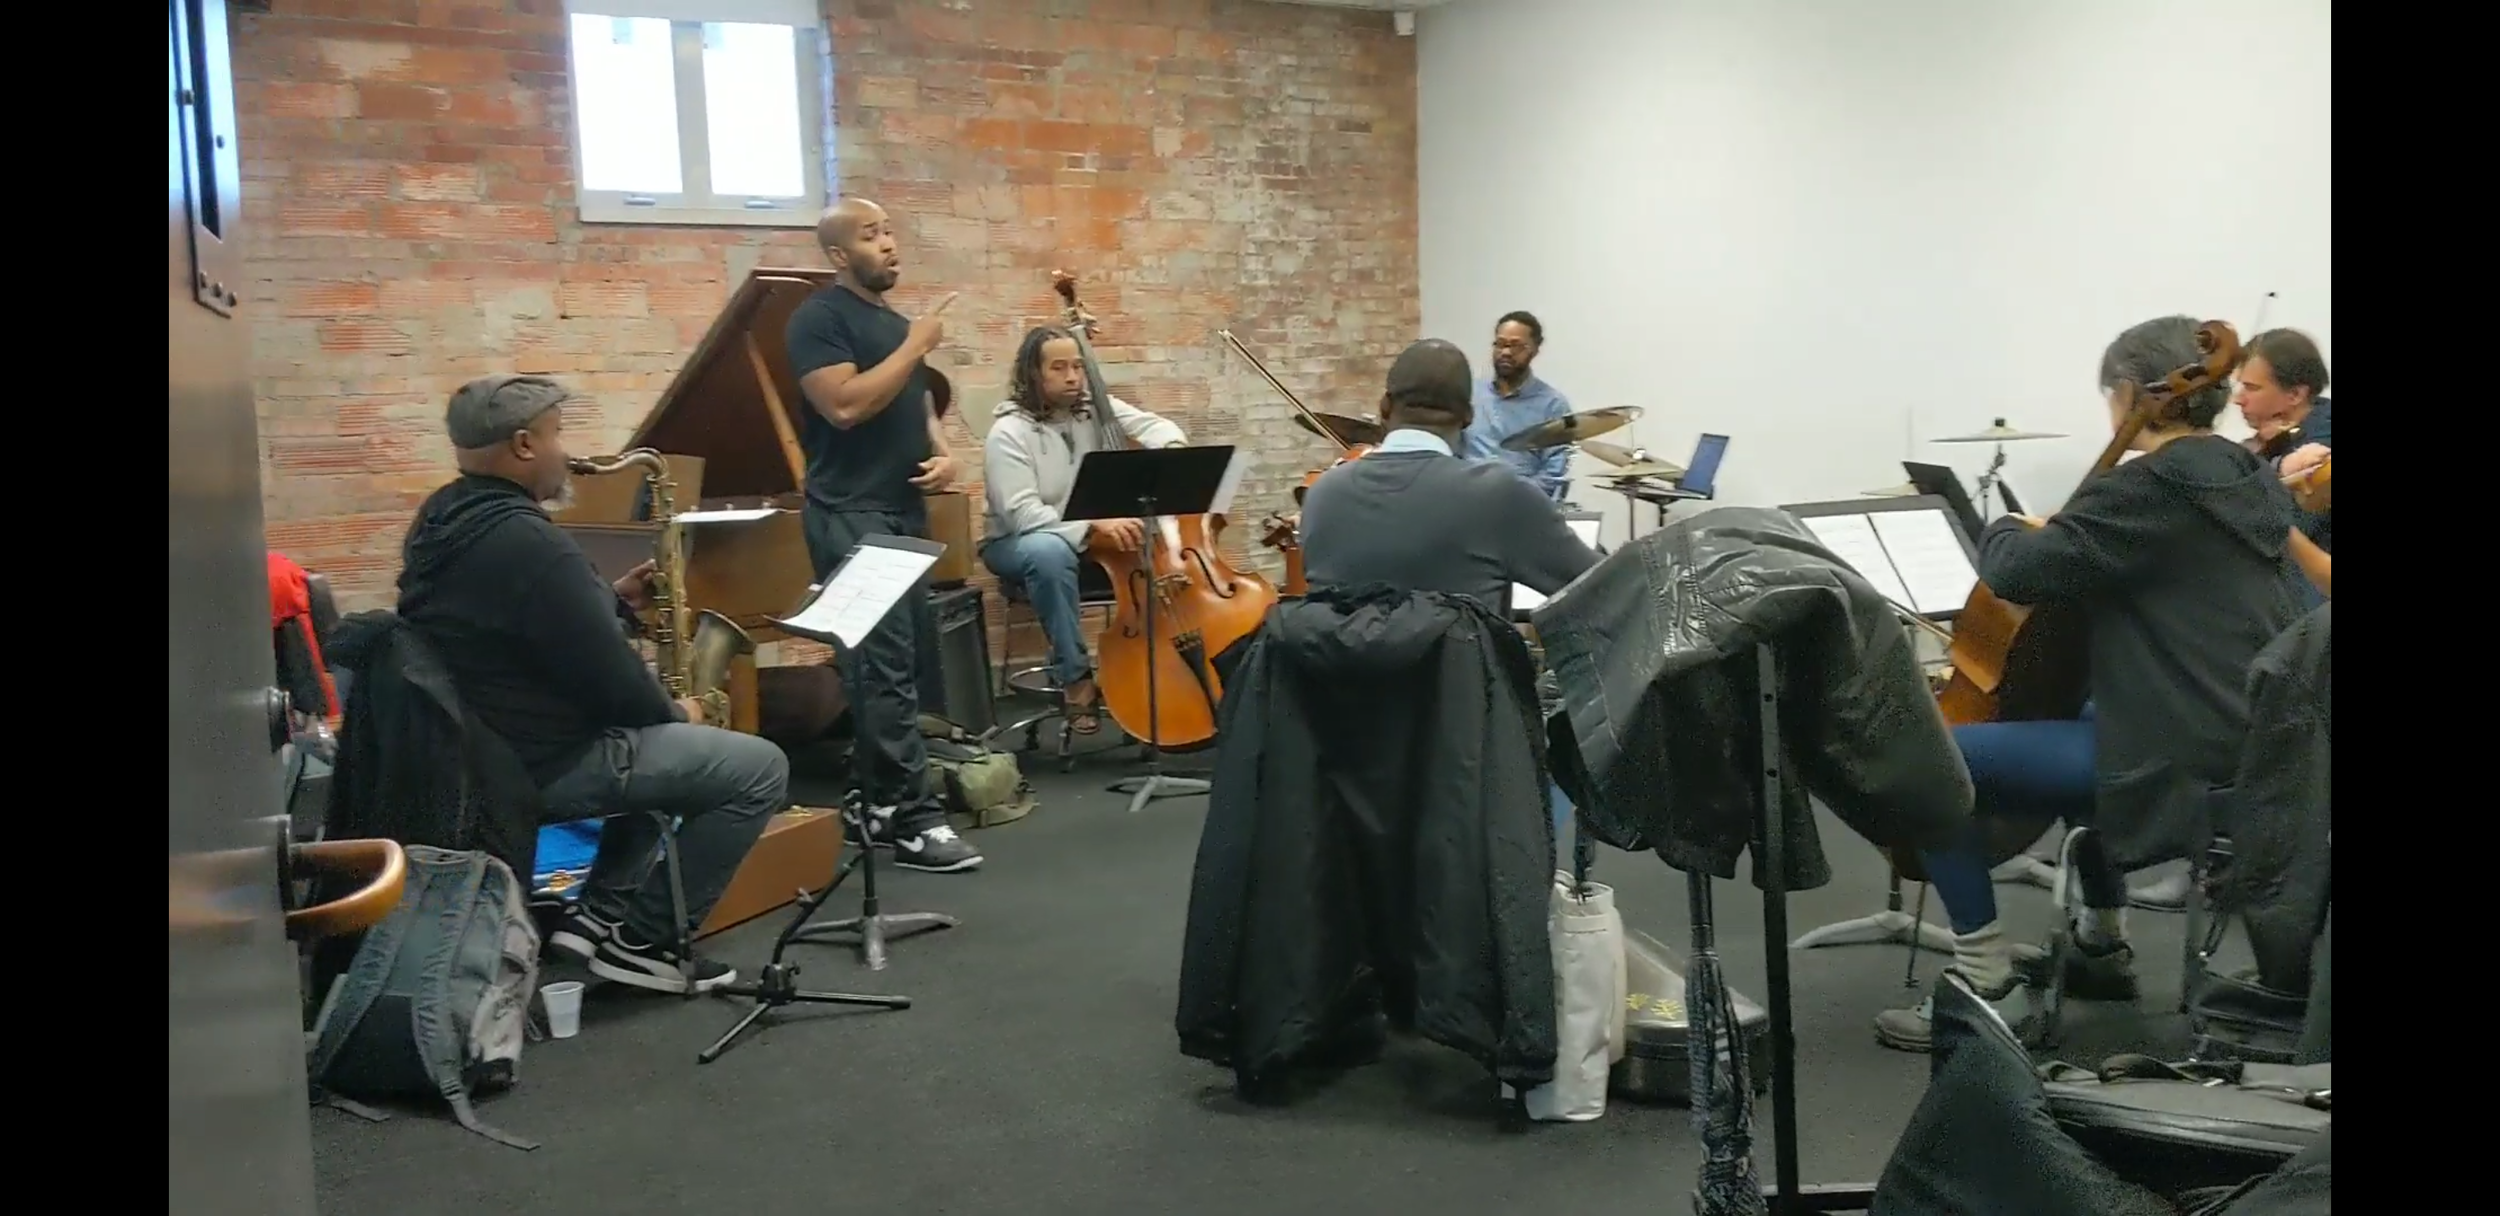 Walking by one of the practice spaces, we got to listen in for a few moments to Max Lomax, artist-in-residence at the Wexner Center for the Arts at Ohio State rehearsing for the world premiere of his 400: Afrikan Epic. We all wished we could have lingered longer, and danced…